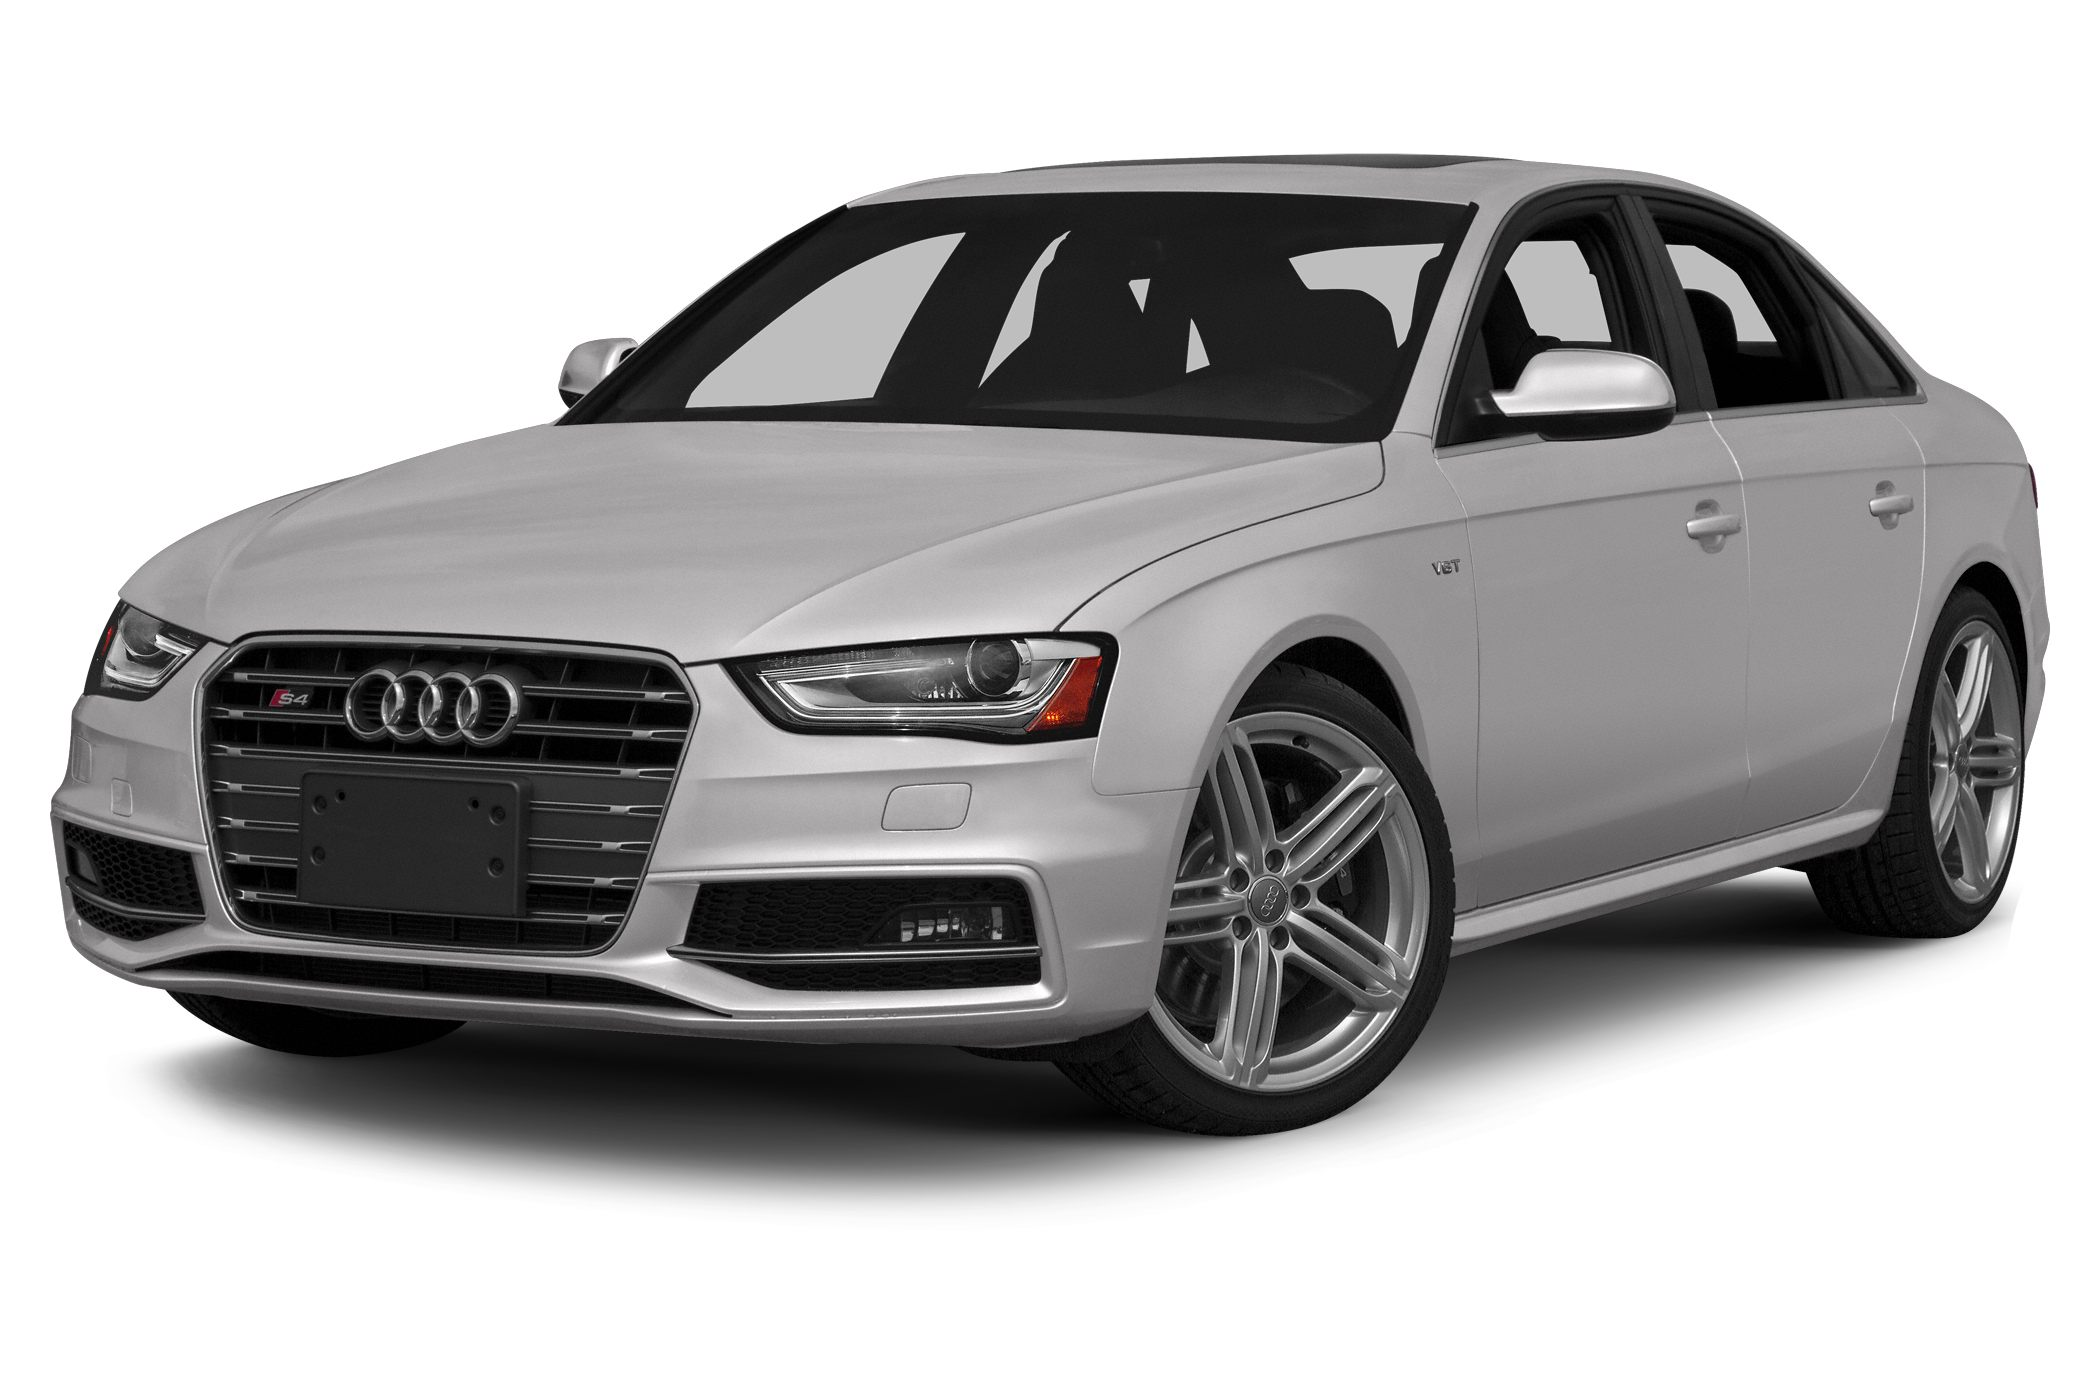 2015 Audi S4 3.0T Premium Plus Sedan for sale in Wallingford for $57,310 with 5 miles.